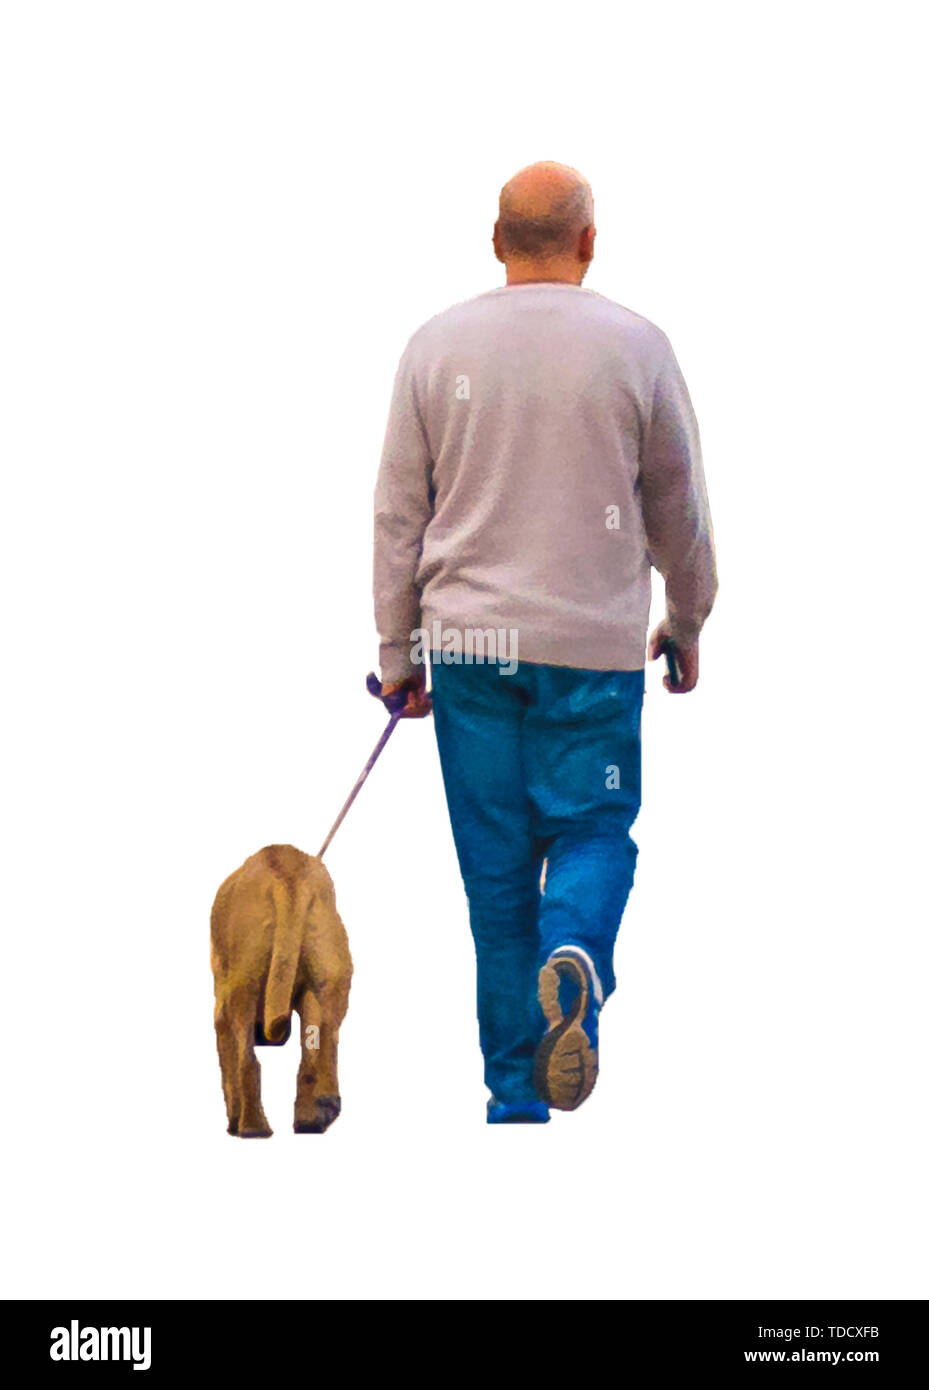 Isolated photo back view adult bald man walking his dog - Stock Image